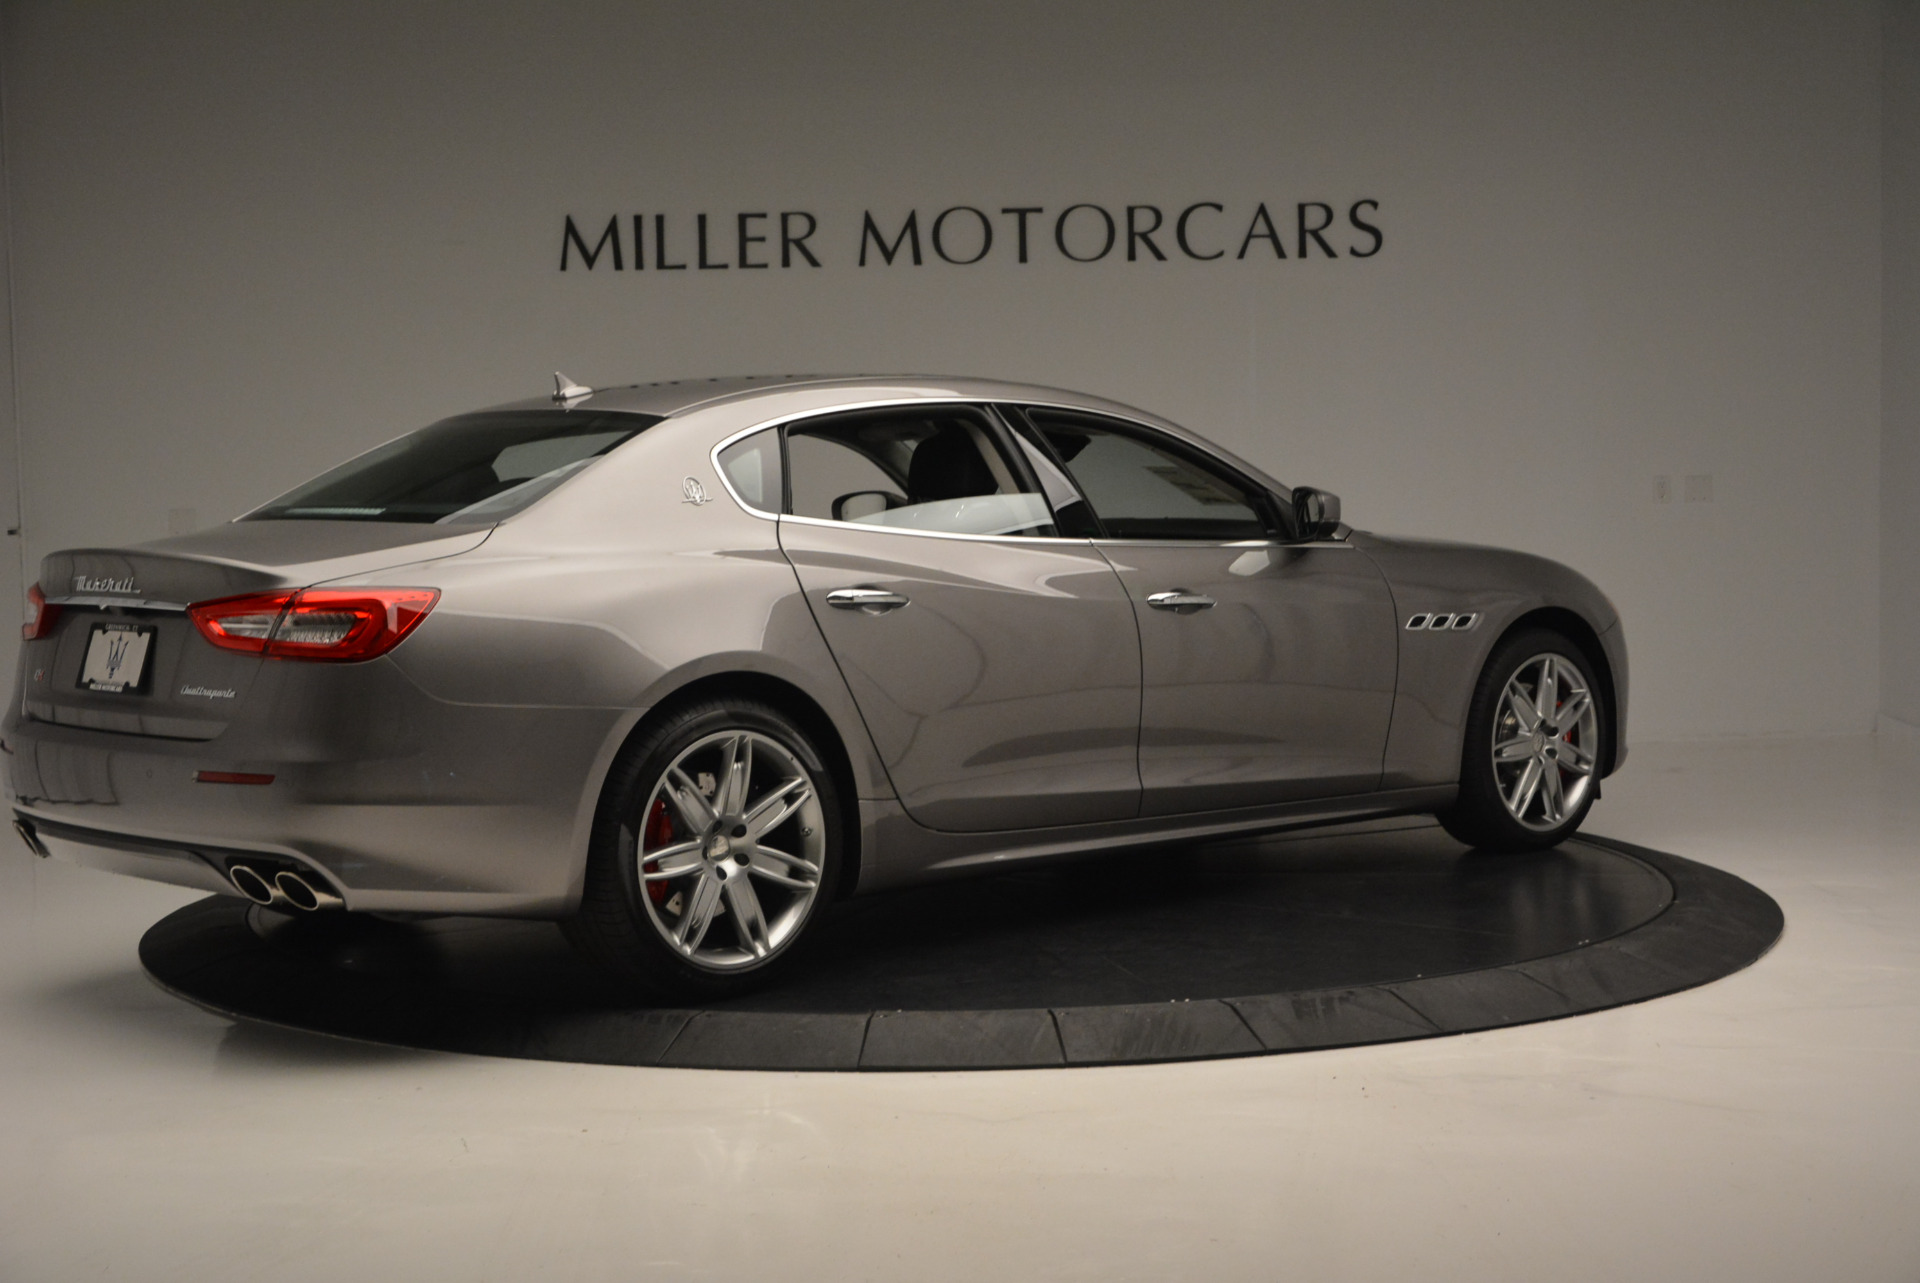 New 2017 Maserati Quattroporte S Q4 GranLusso For Sale In Westport, CT 611_p8